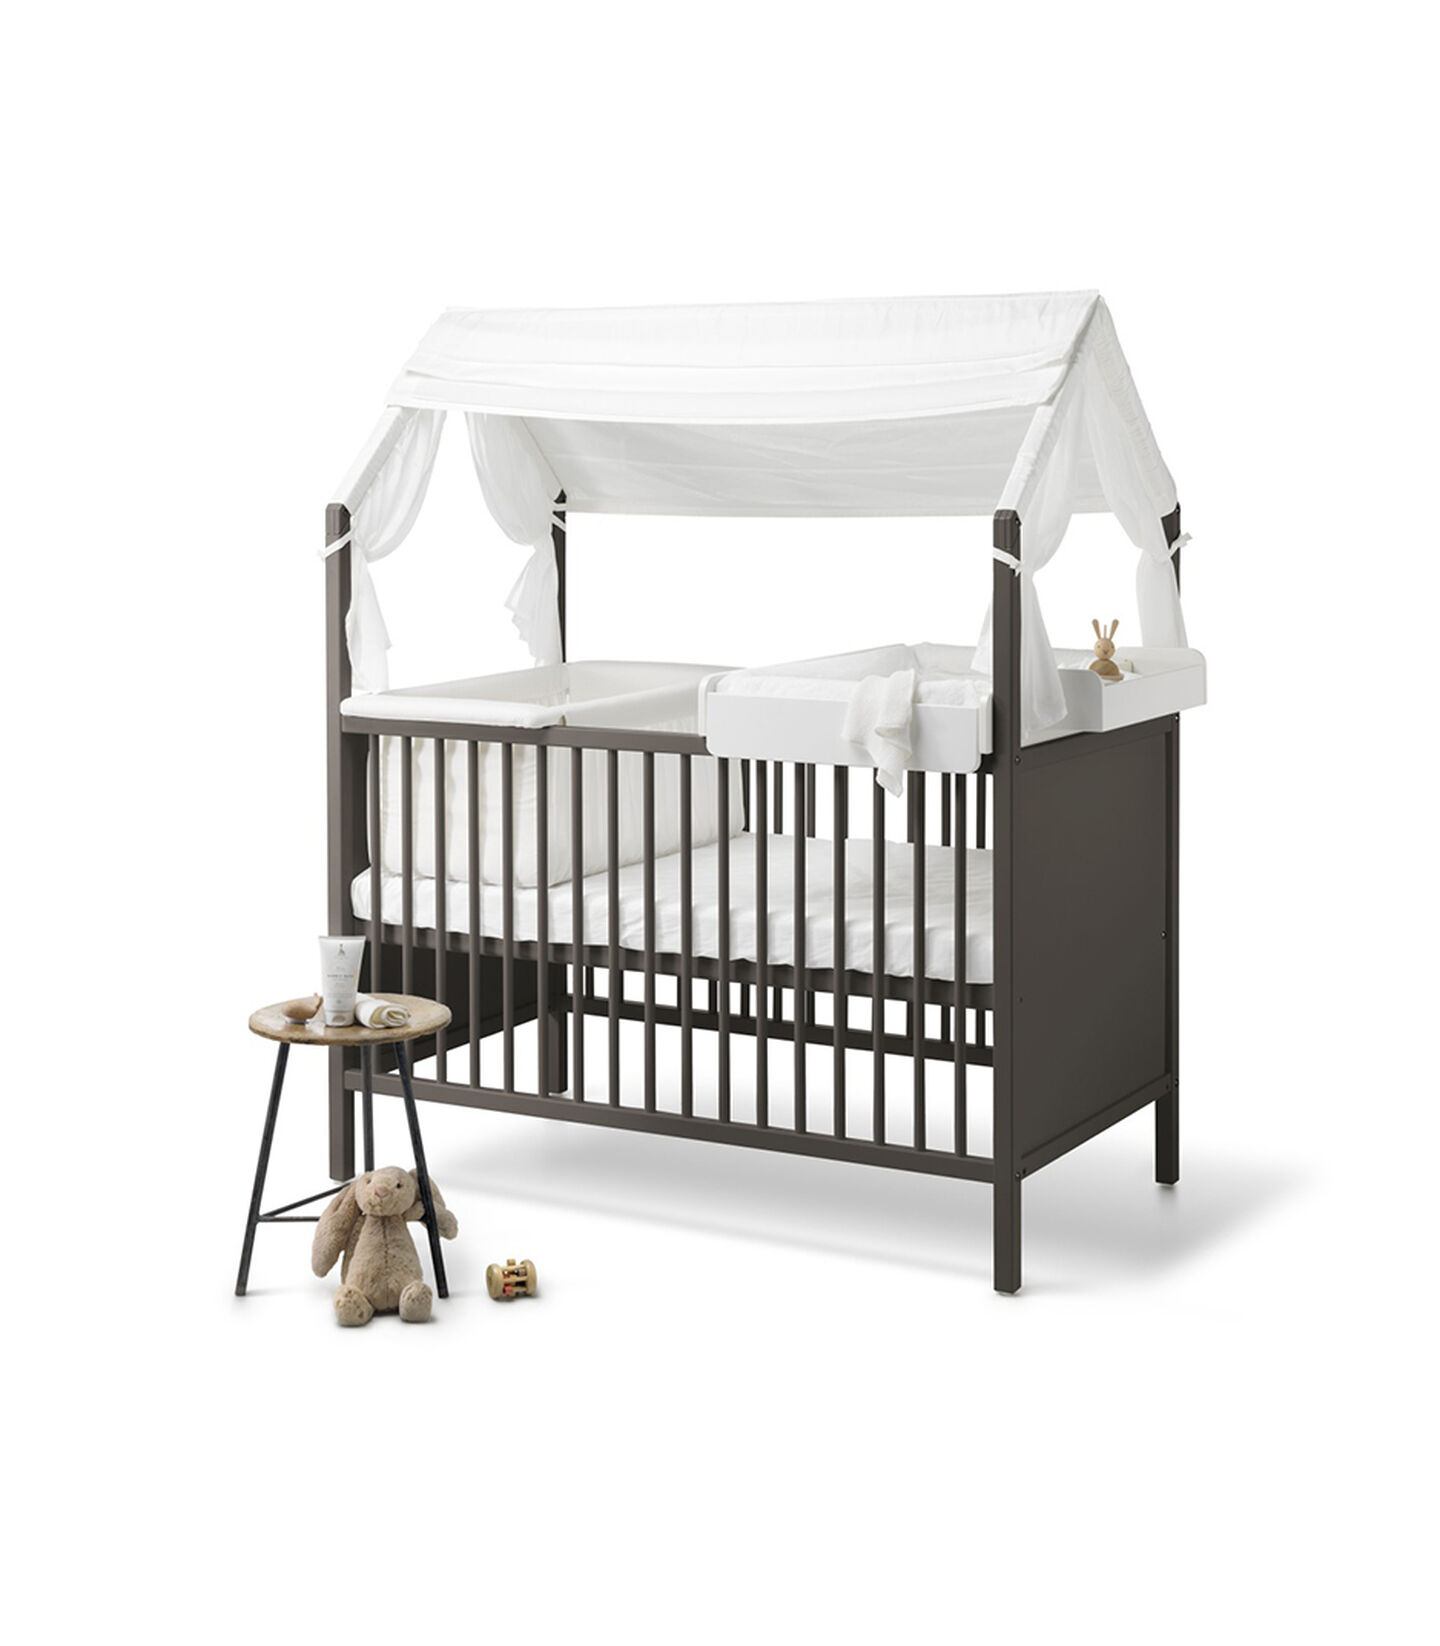 Stokke® Home Bed, Hazy Grey. With Cradle and Changer. Stokke® Home™ Roof textile, Natural